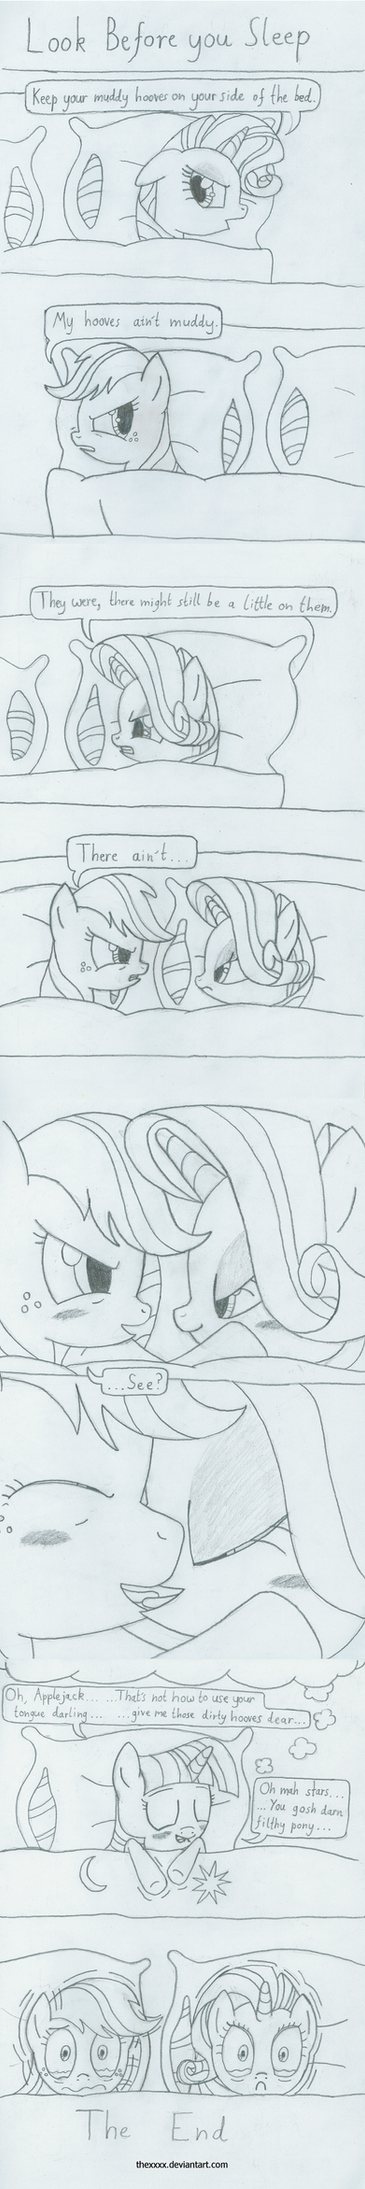 Look Before you Sleep - Sketch by TheXxxX